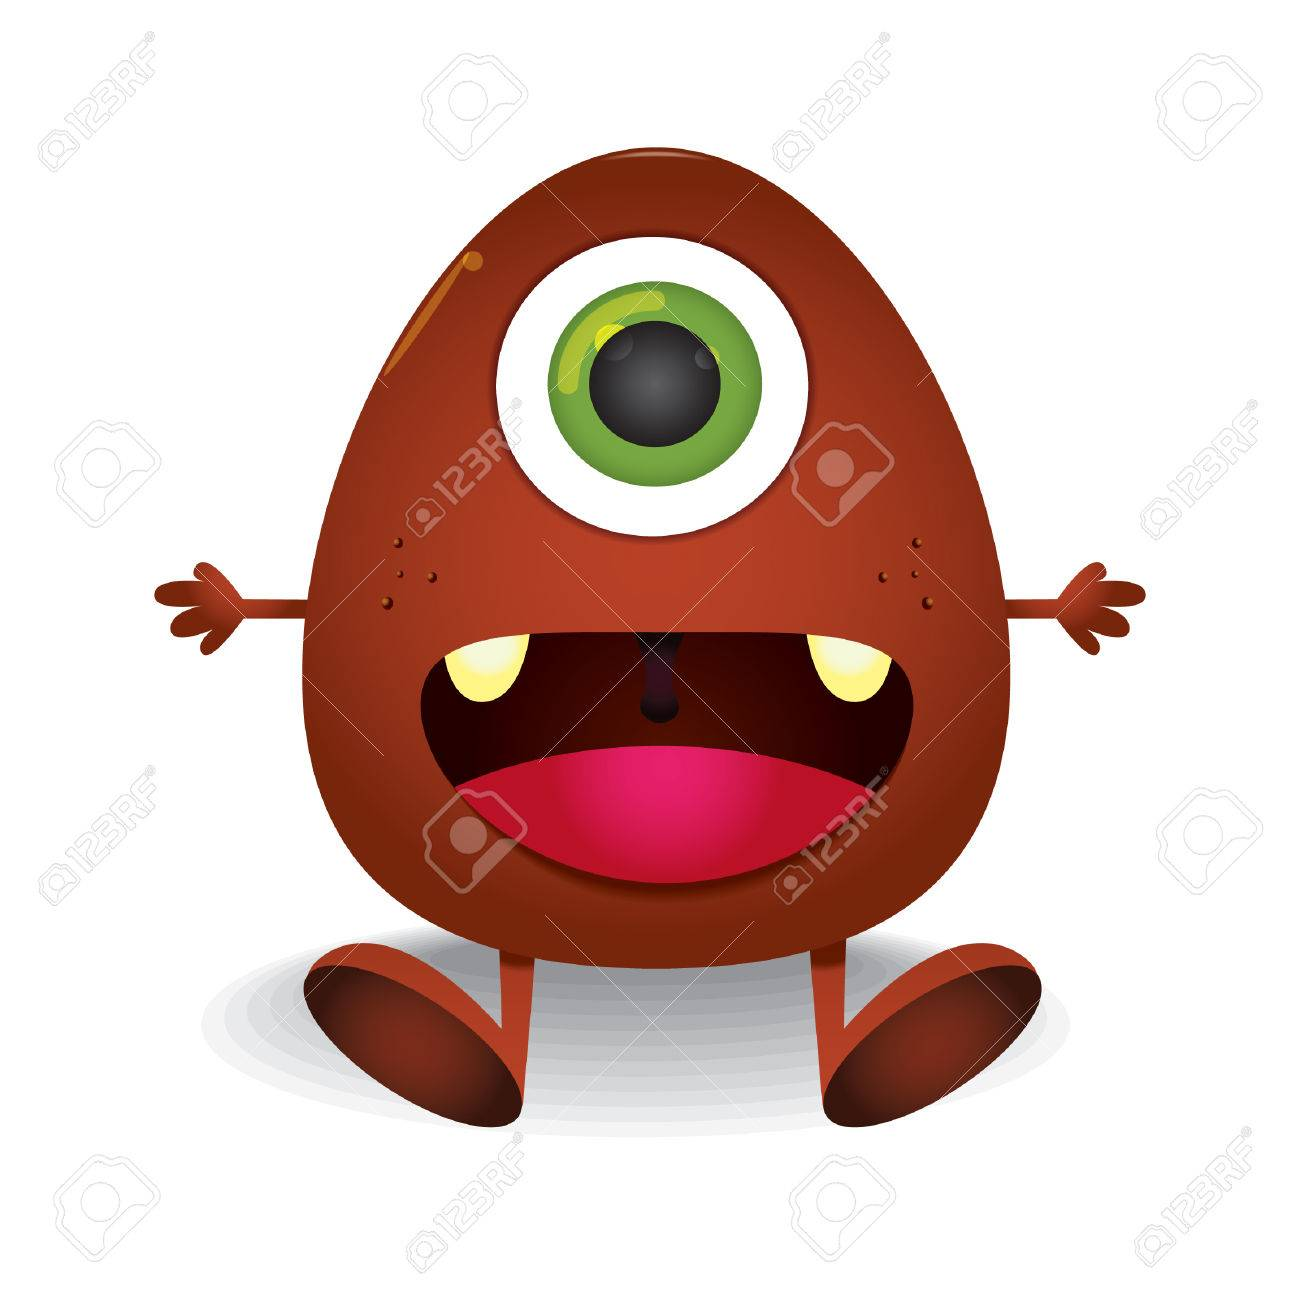 Cute One Eyed Monster Royalty Free Cliparts Vectors And Stock Illustration Image 43238677